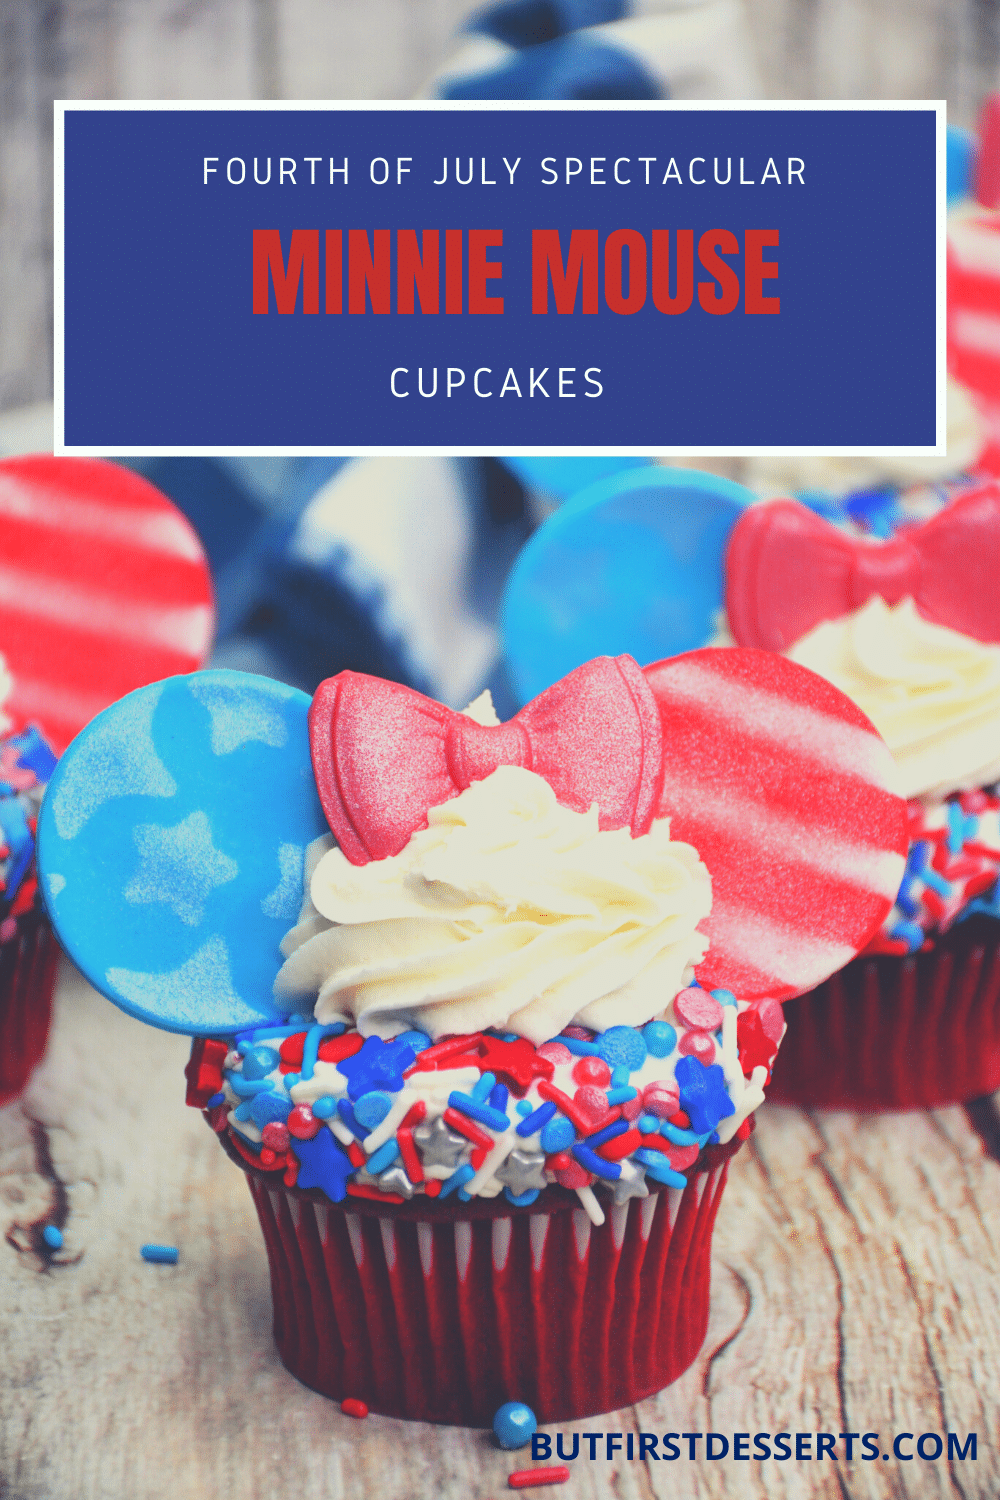 Fourth of July Spectacular Minnie Mouse Cupcakes